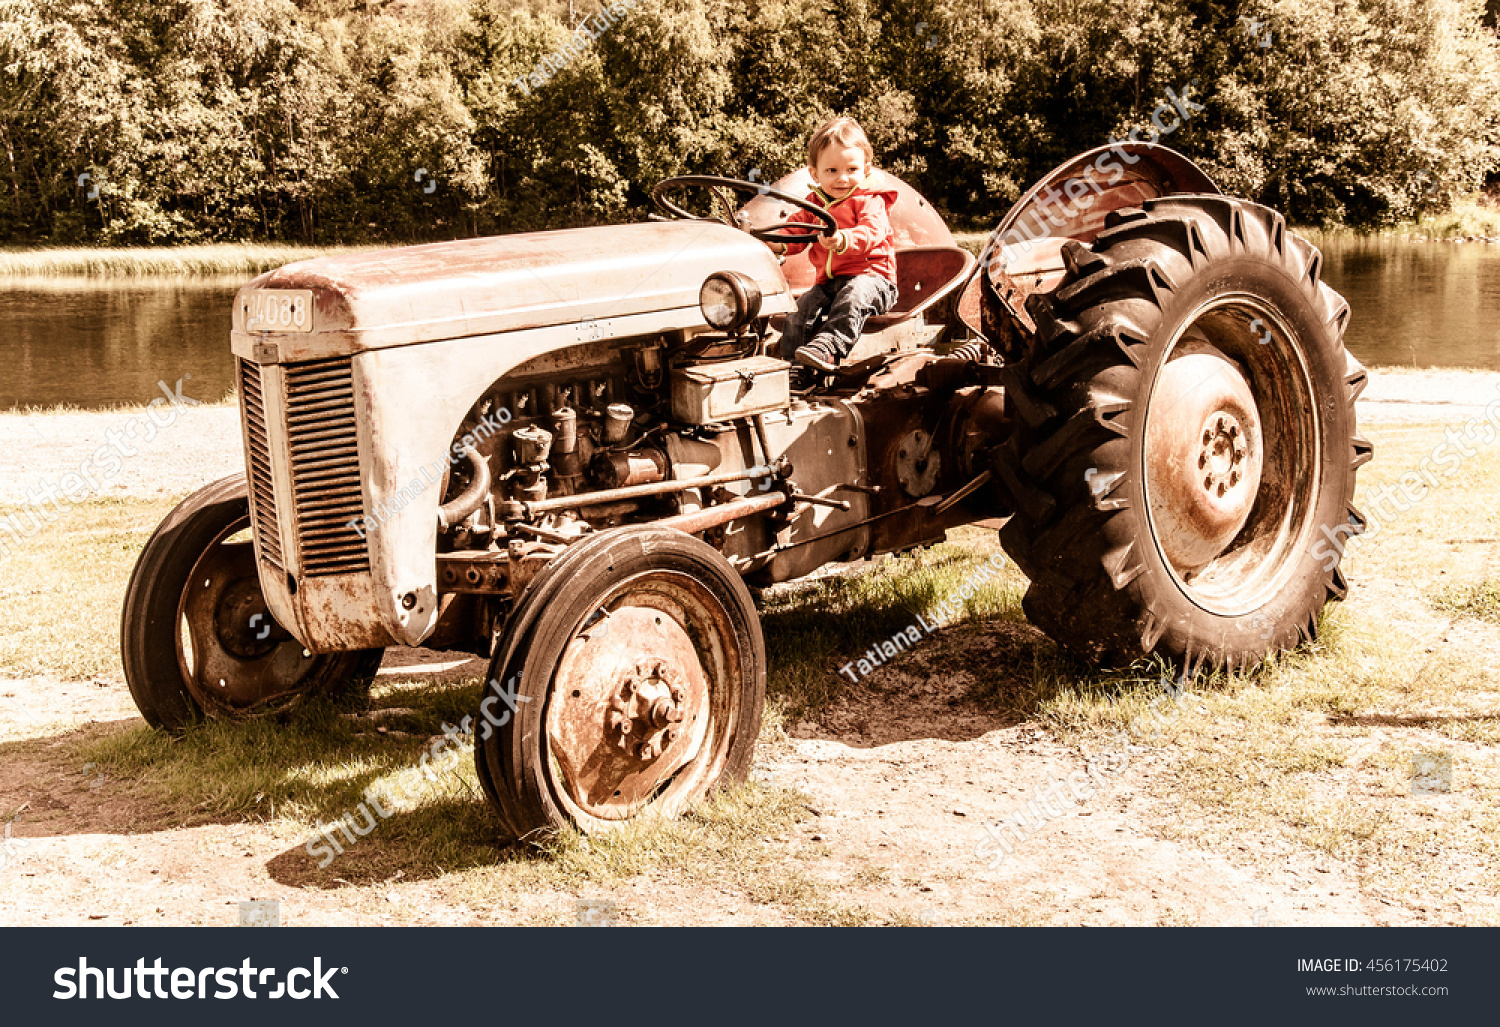 Boy On Tractor : Baby boy on tractor gritty effect stockfoto